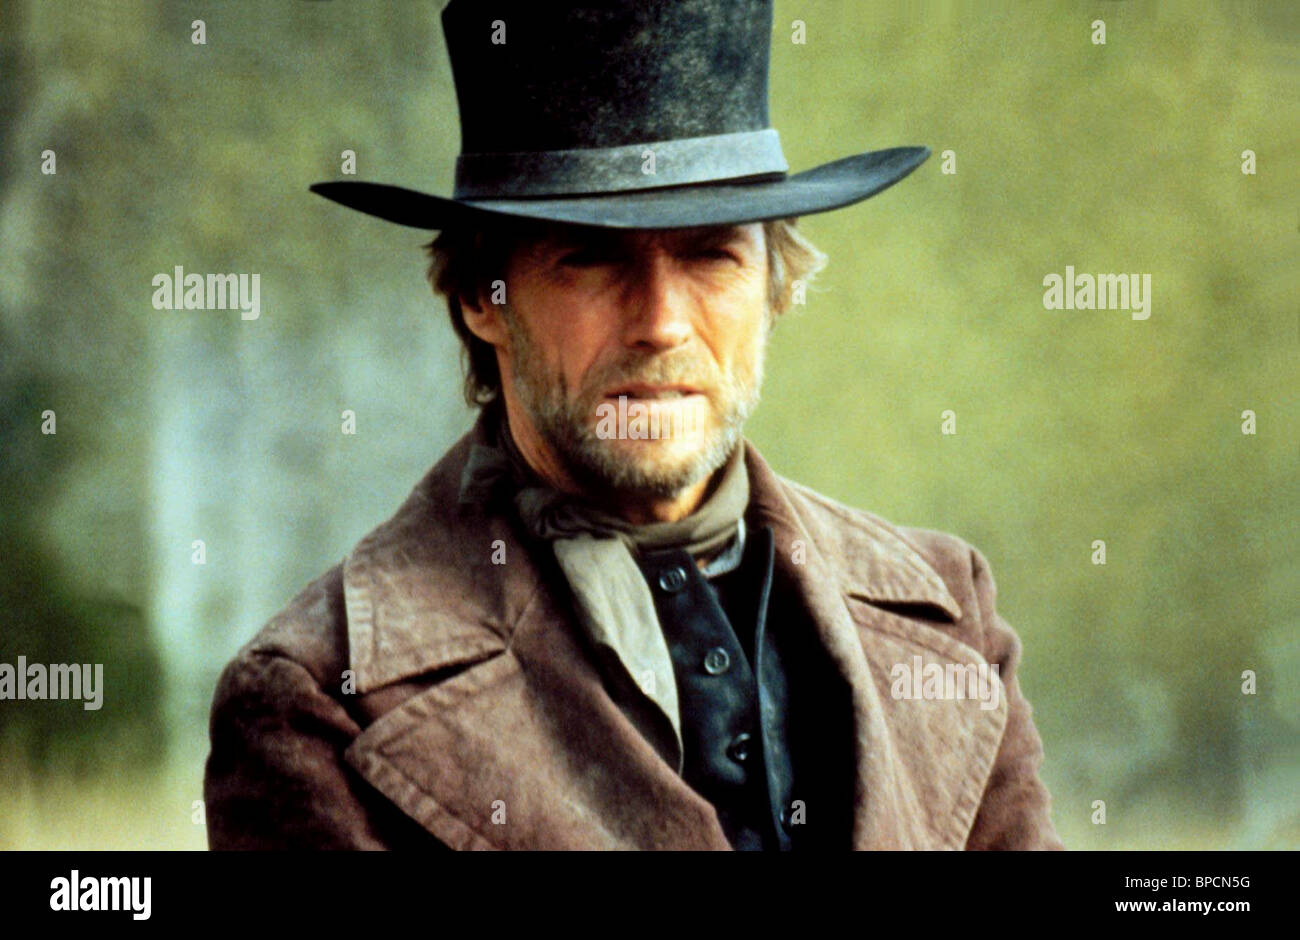 CLINT EASTWOOD PALE RIDER (1985 Stock Photo  31012844 - Alamy 29b73963a68